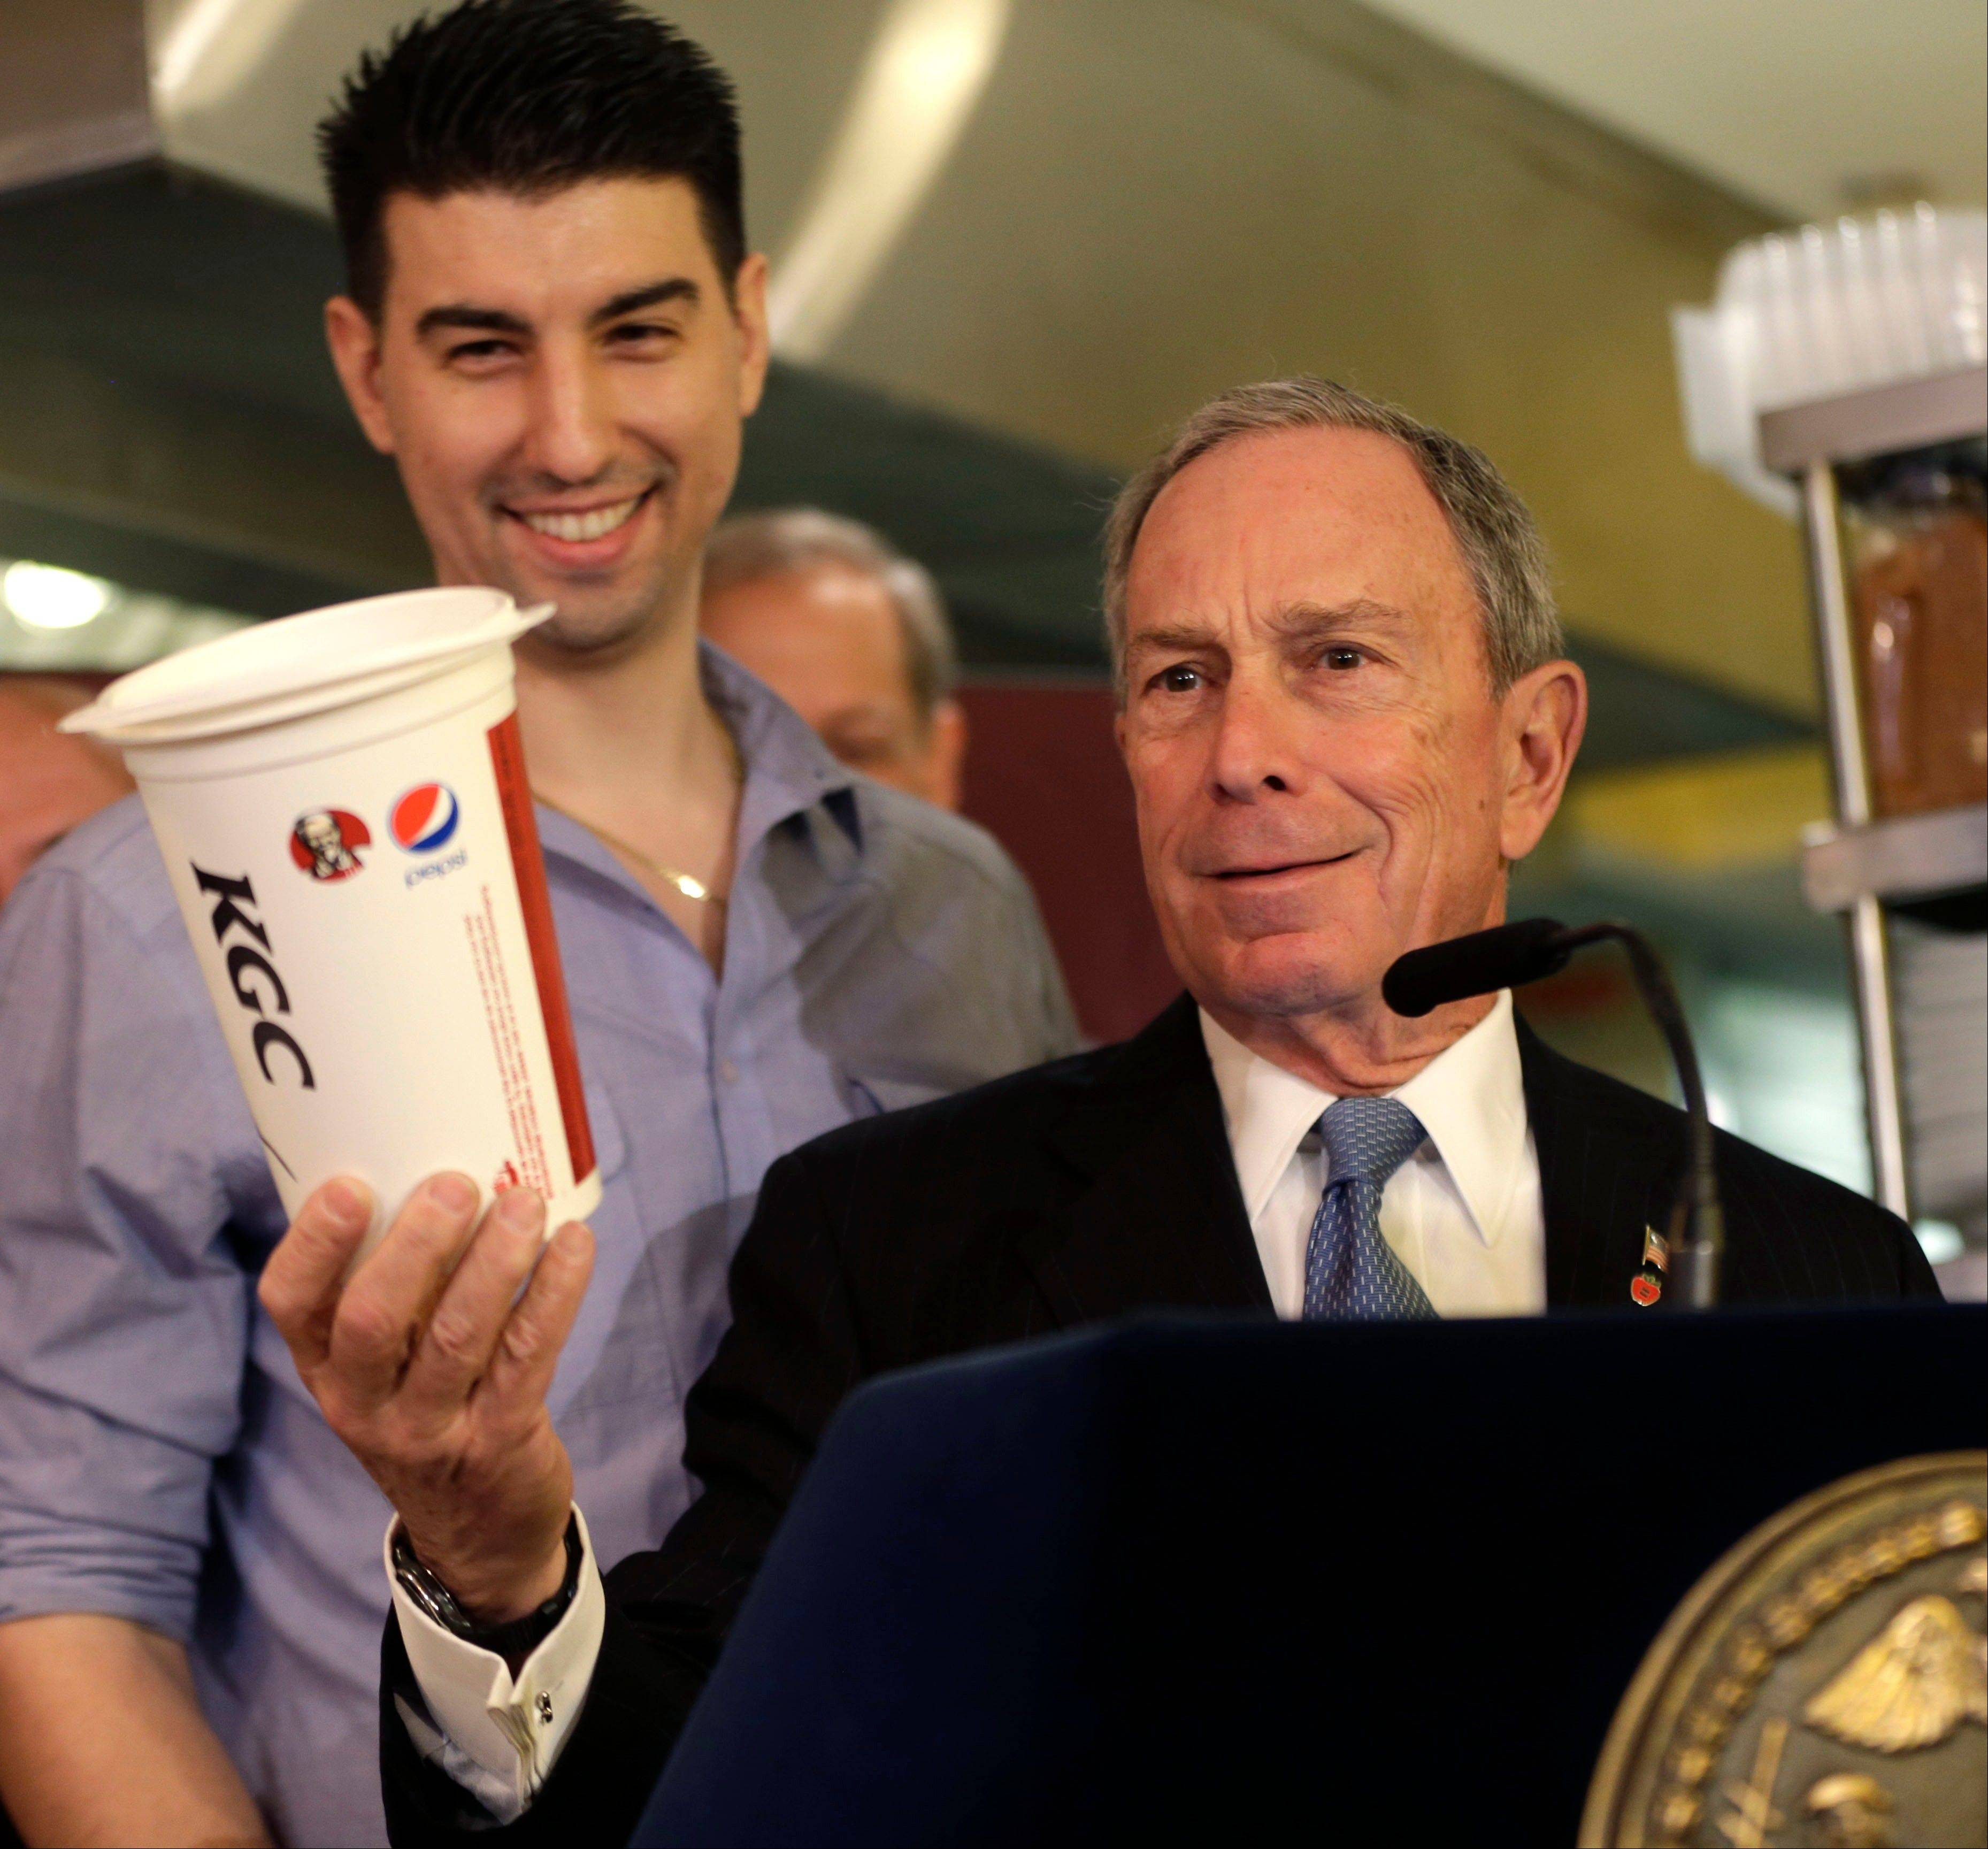 New York City Mayor Michael Bloomberg looks at a 64-ounce cup, as Lucky�s Cafe owner Greg Anagnostopoulos, left, stands behind him. An appeals court ruled Tuesday that New York City�s Board of Health exceeded its legal authority and acted unconstitutionally when it tried to put a size limit on soft drinks served in city restaurants.